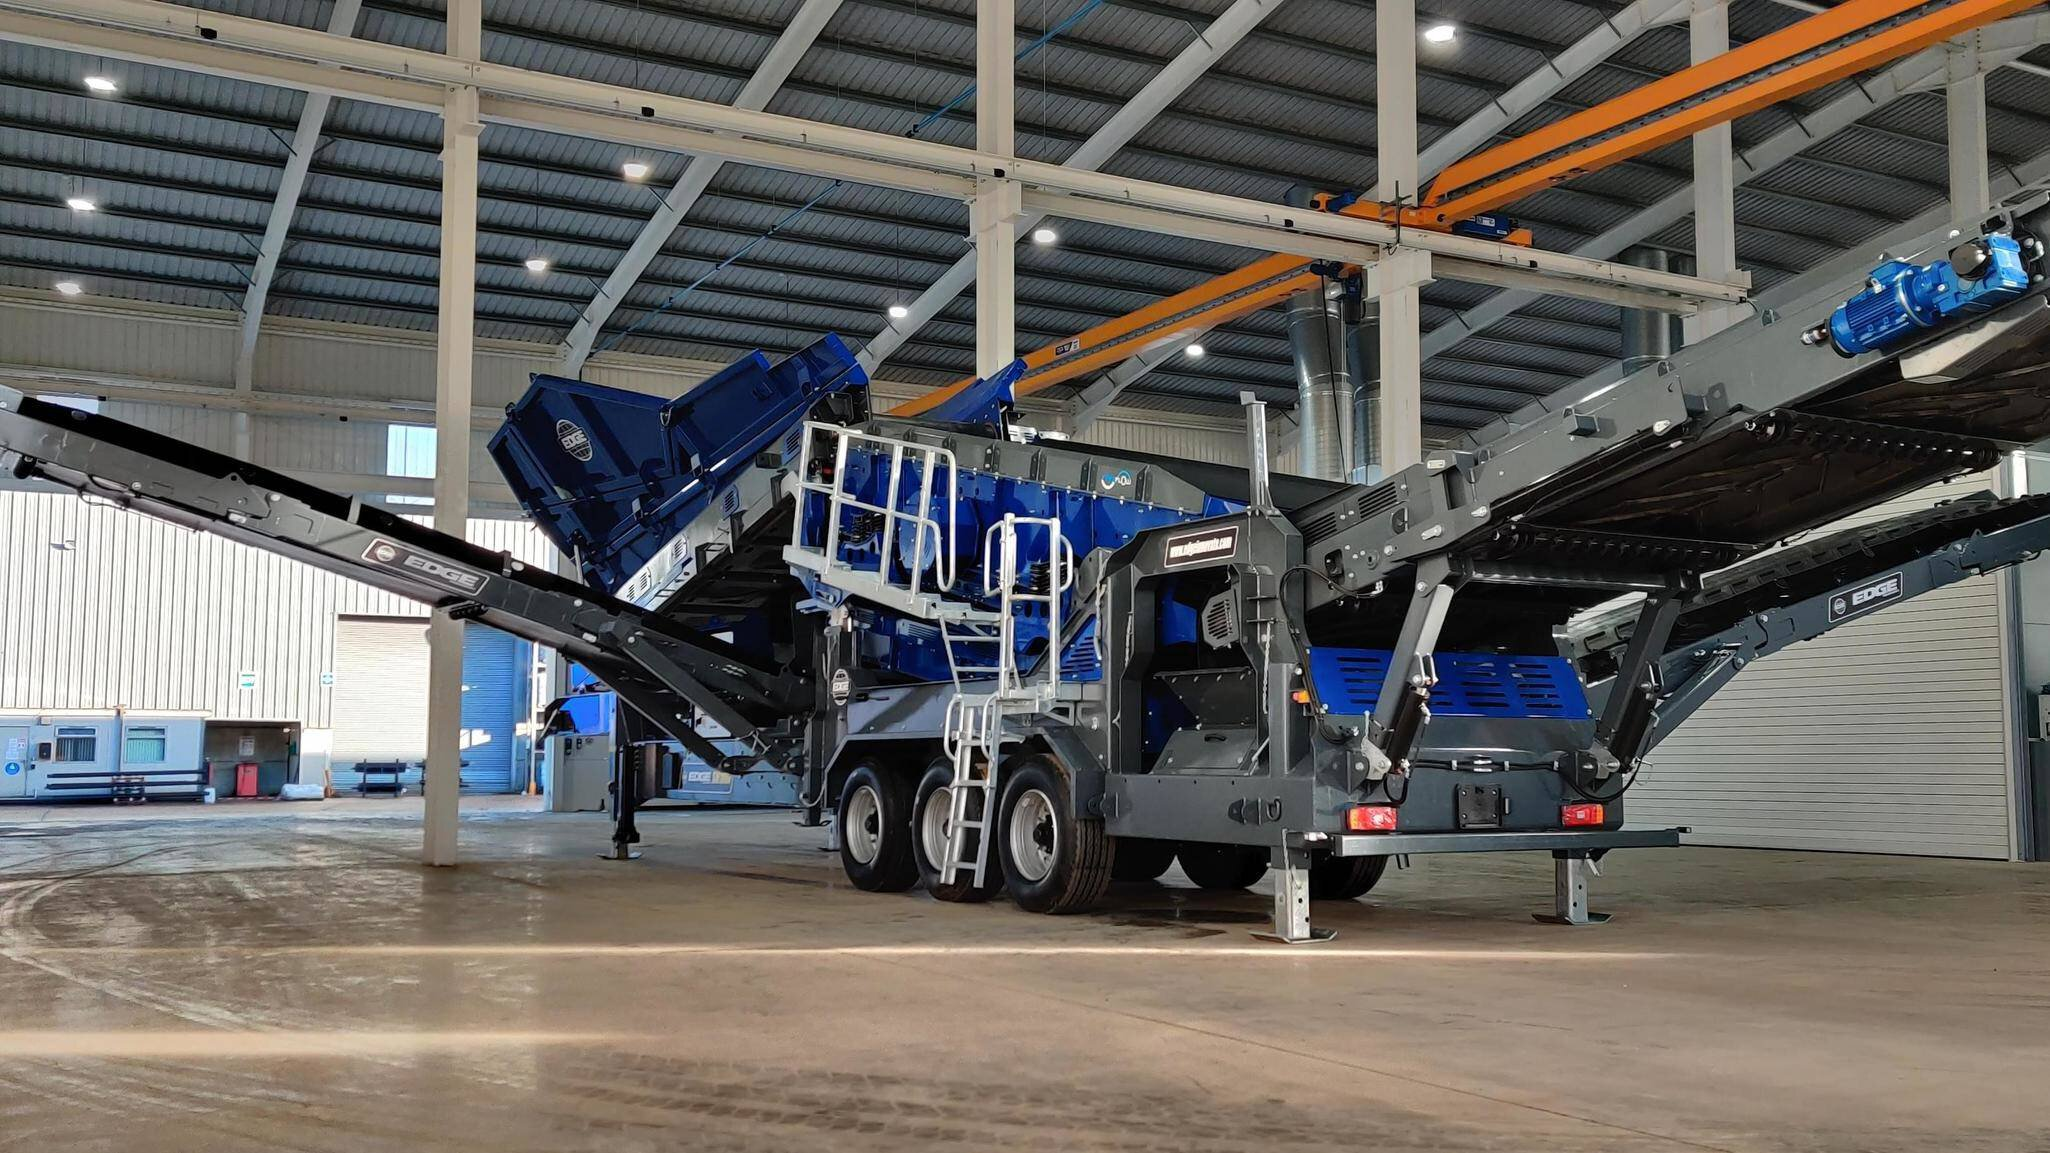 Gallery image 1 - The EDGE SM186 wheeled mounted screener is a highly efficient portable screen plant designed for the most difficult and demanding of applications including recycling, soils, aggregates, compost and demolition waste.